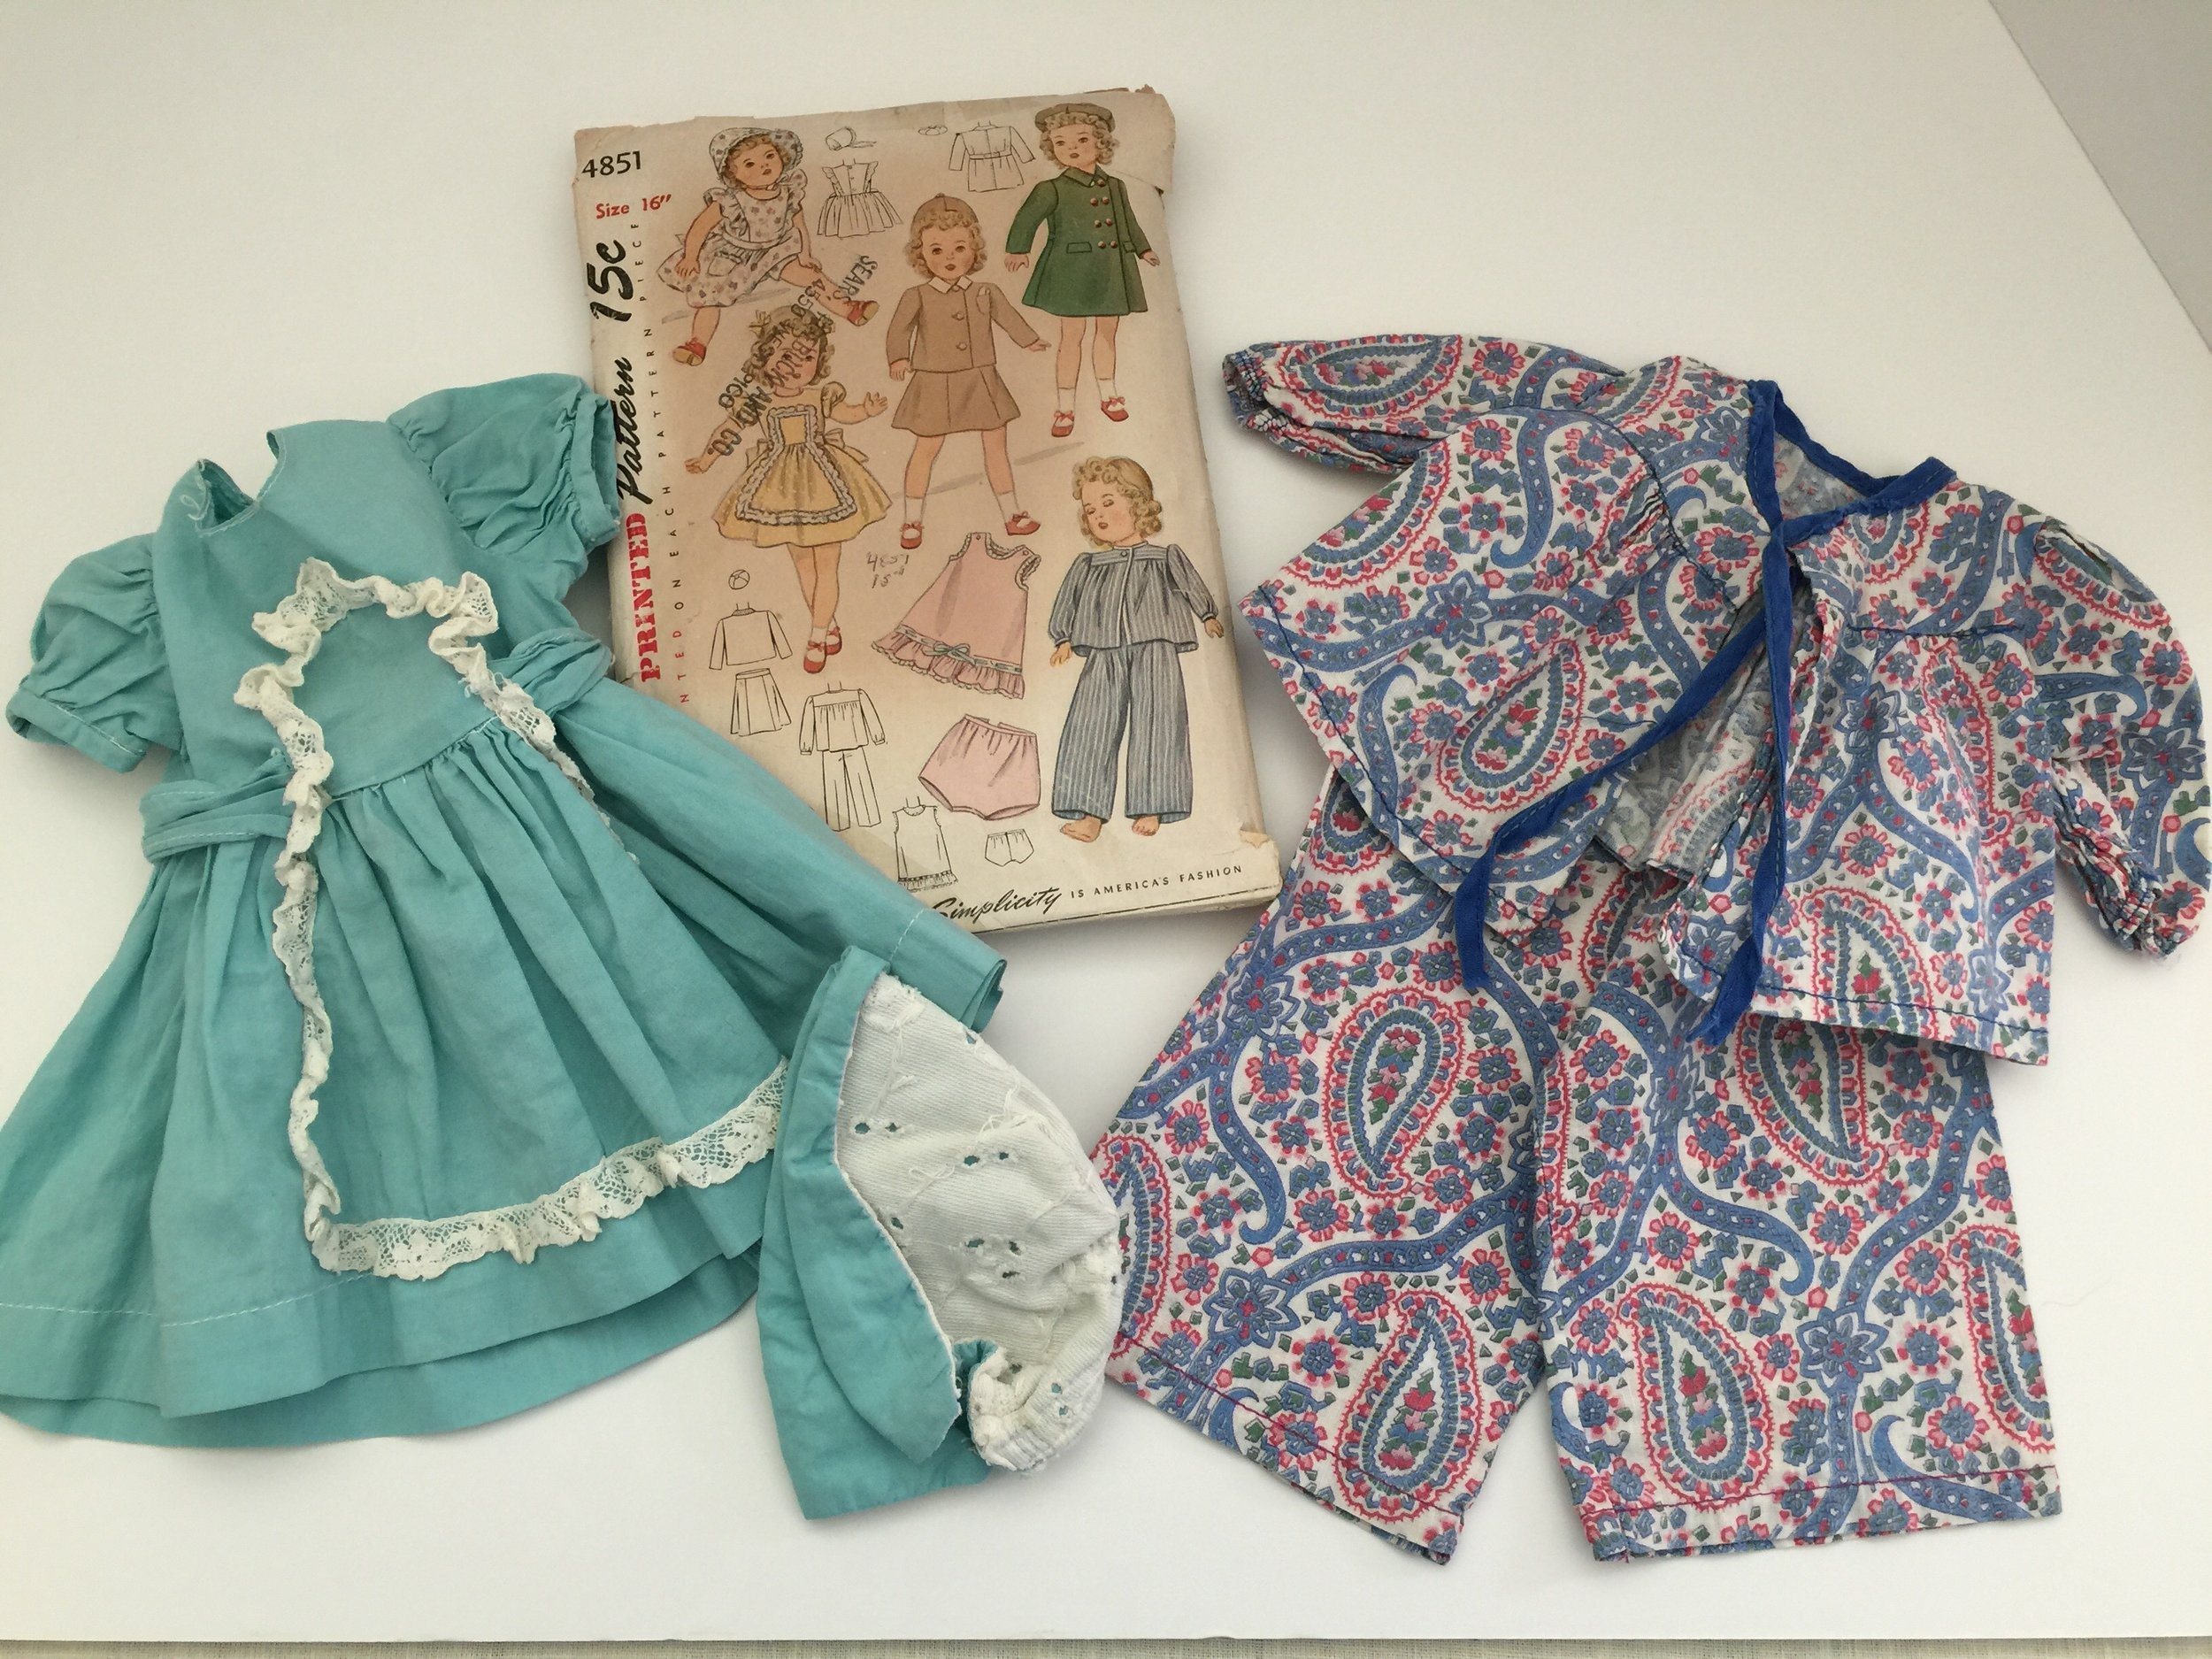 I collected this copy of the old pattern that I am sure was the one my mother used to make this dress with matching panties and hat and also paisley pajamas.